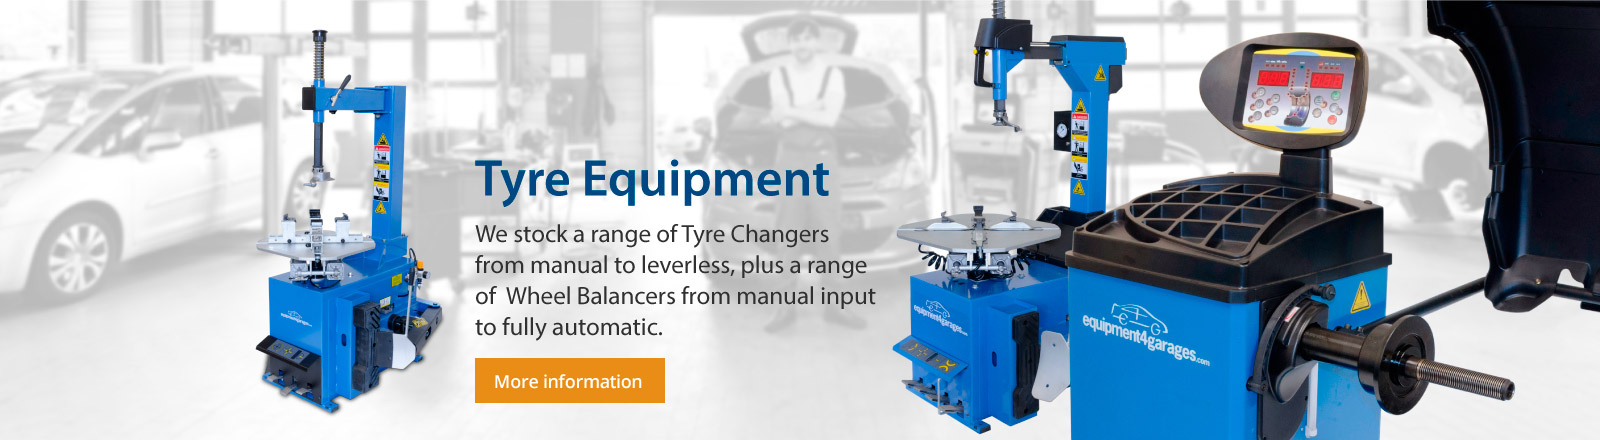 Tyre-Changers